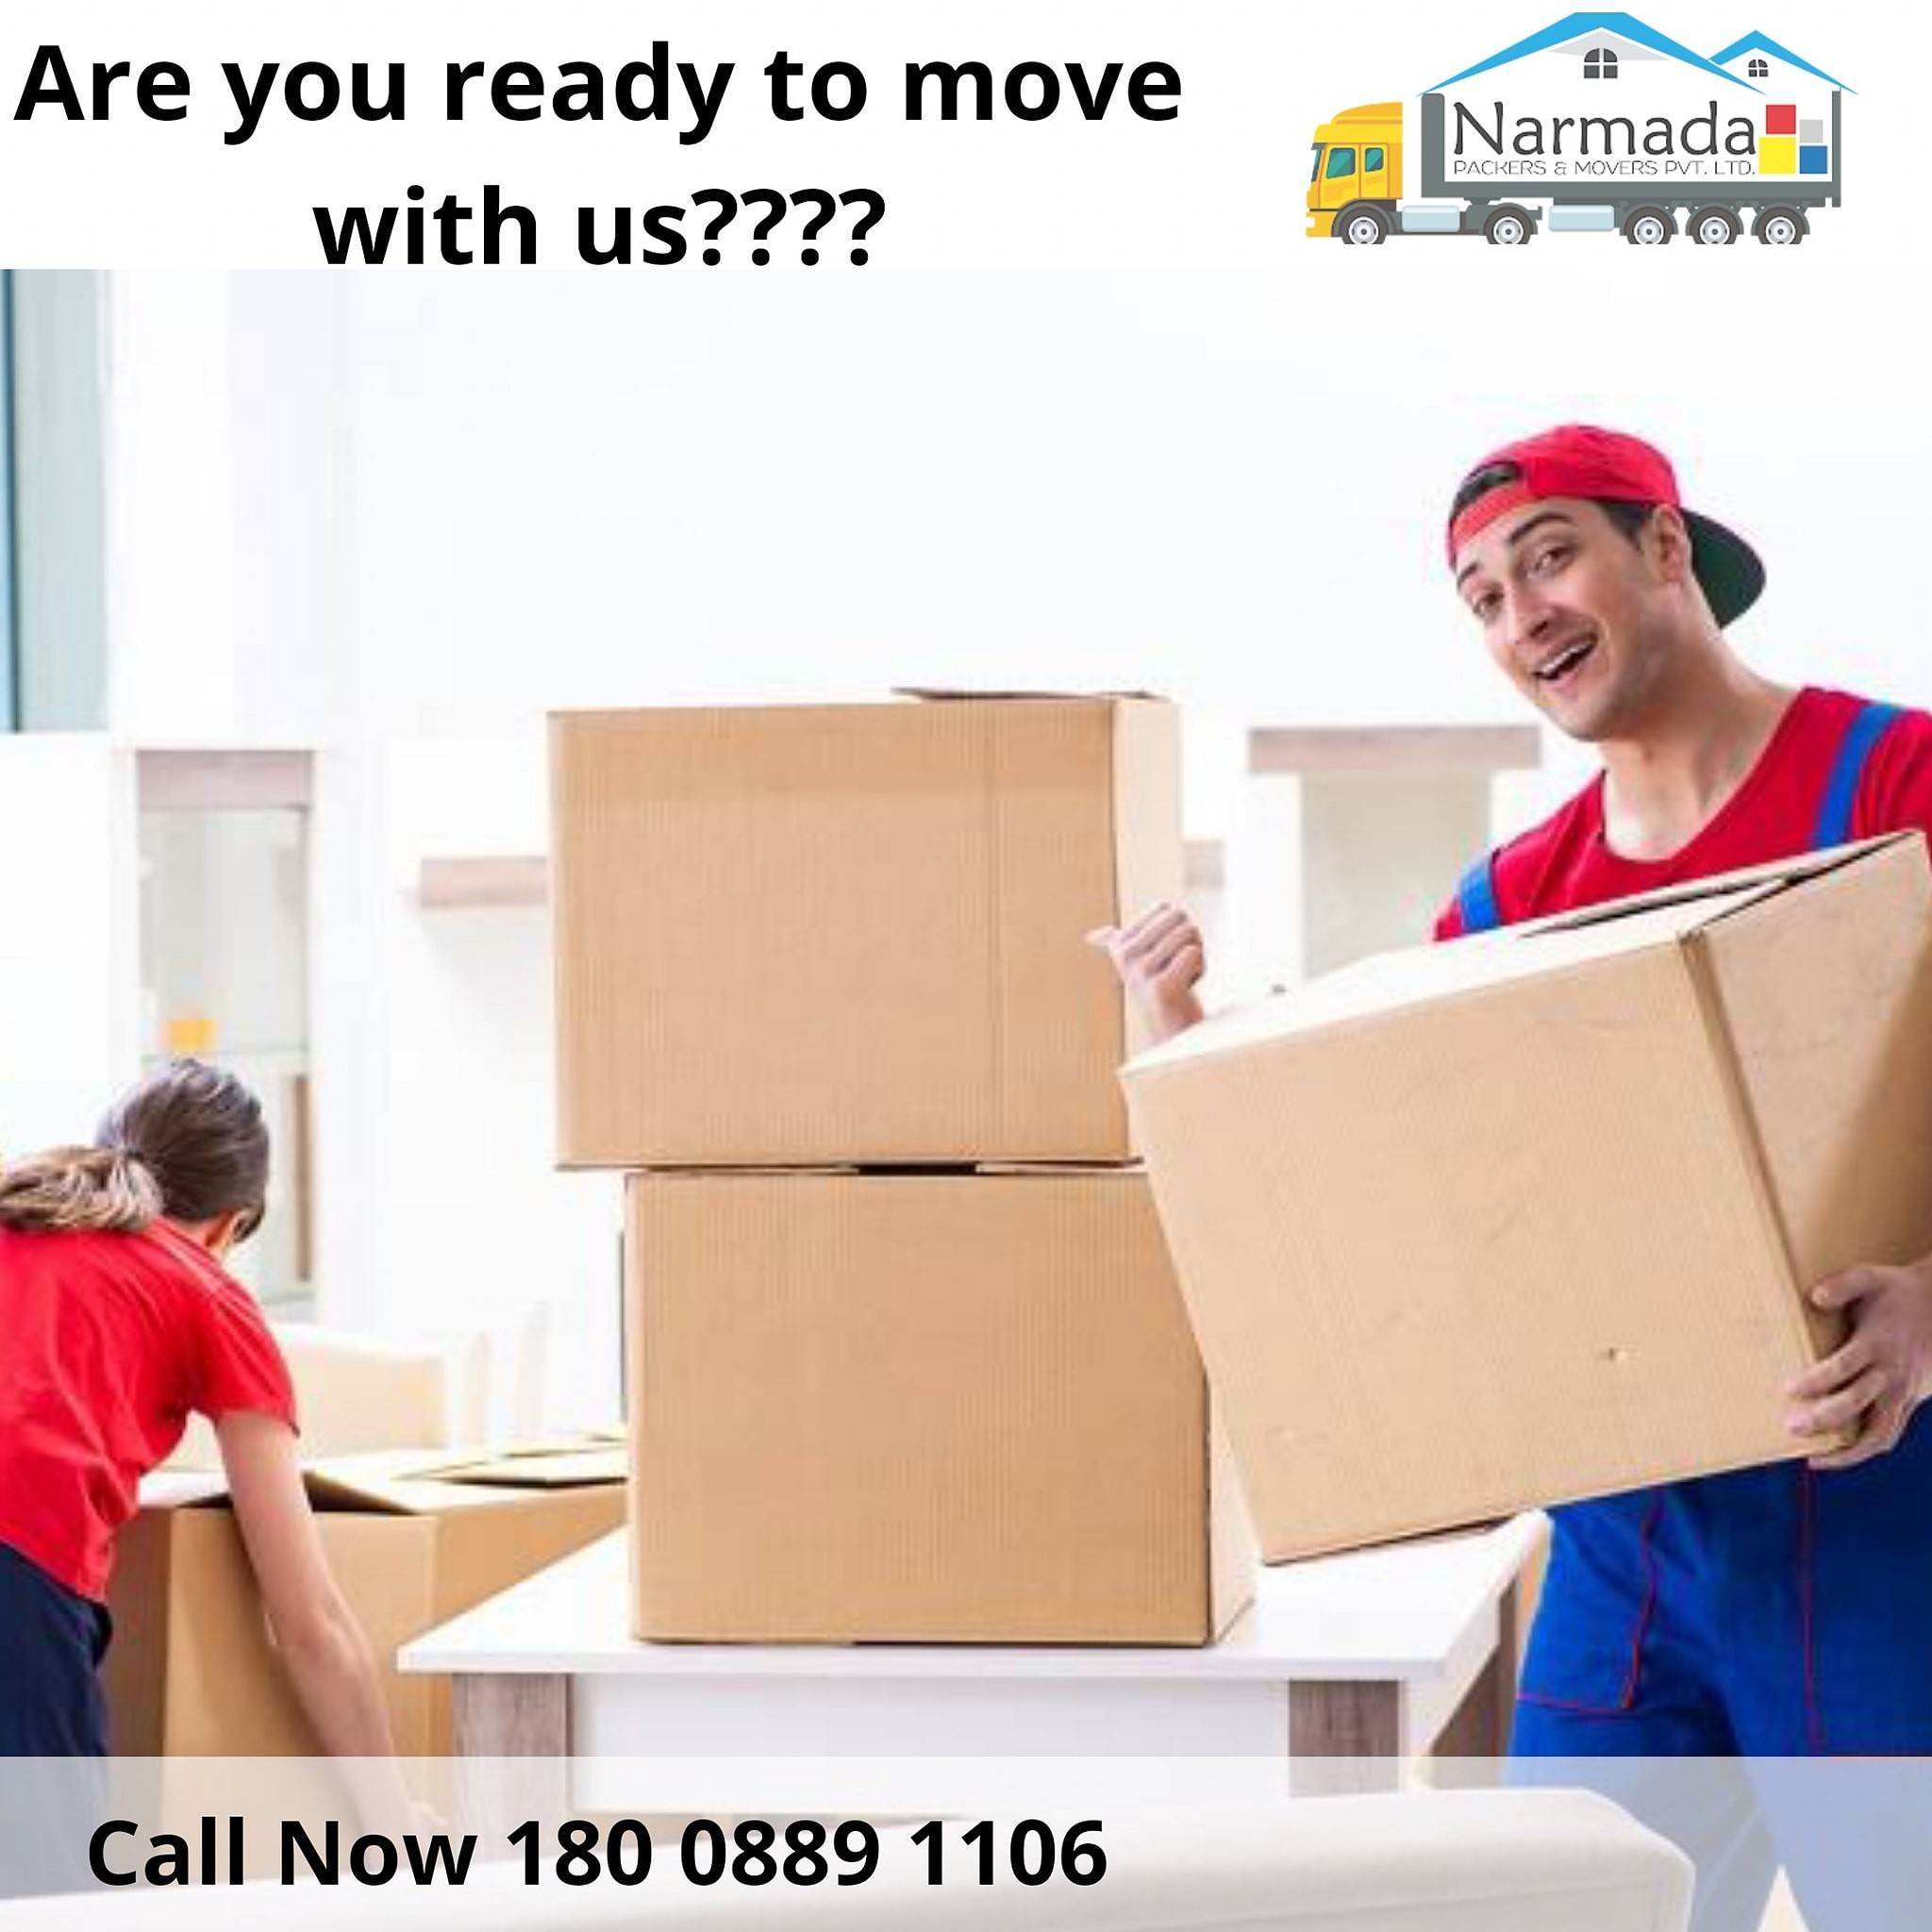 Narmada Packers And Movers